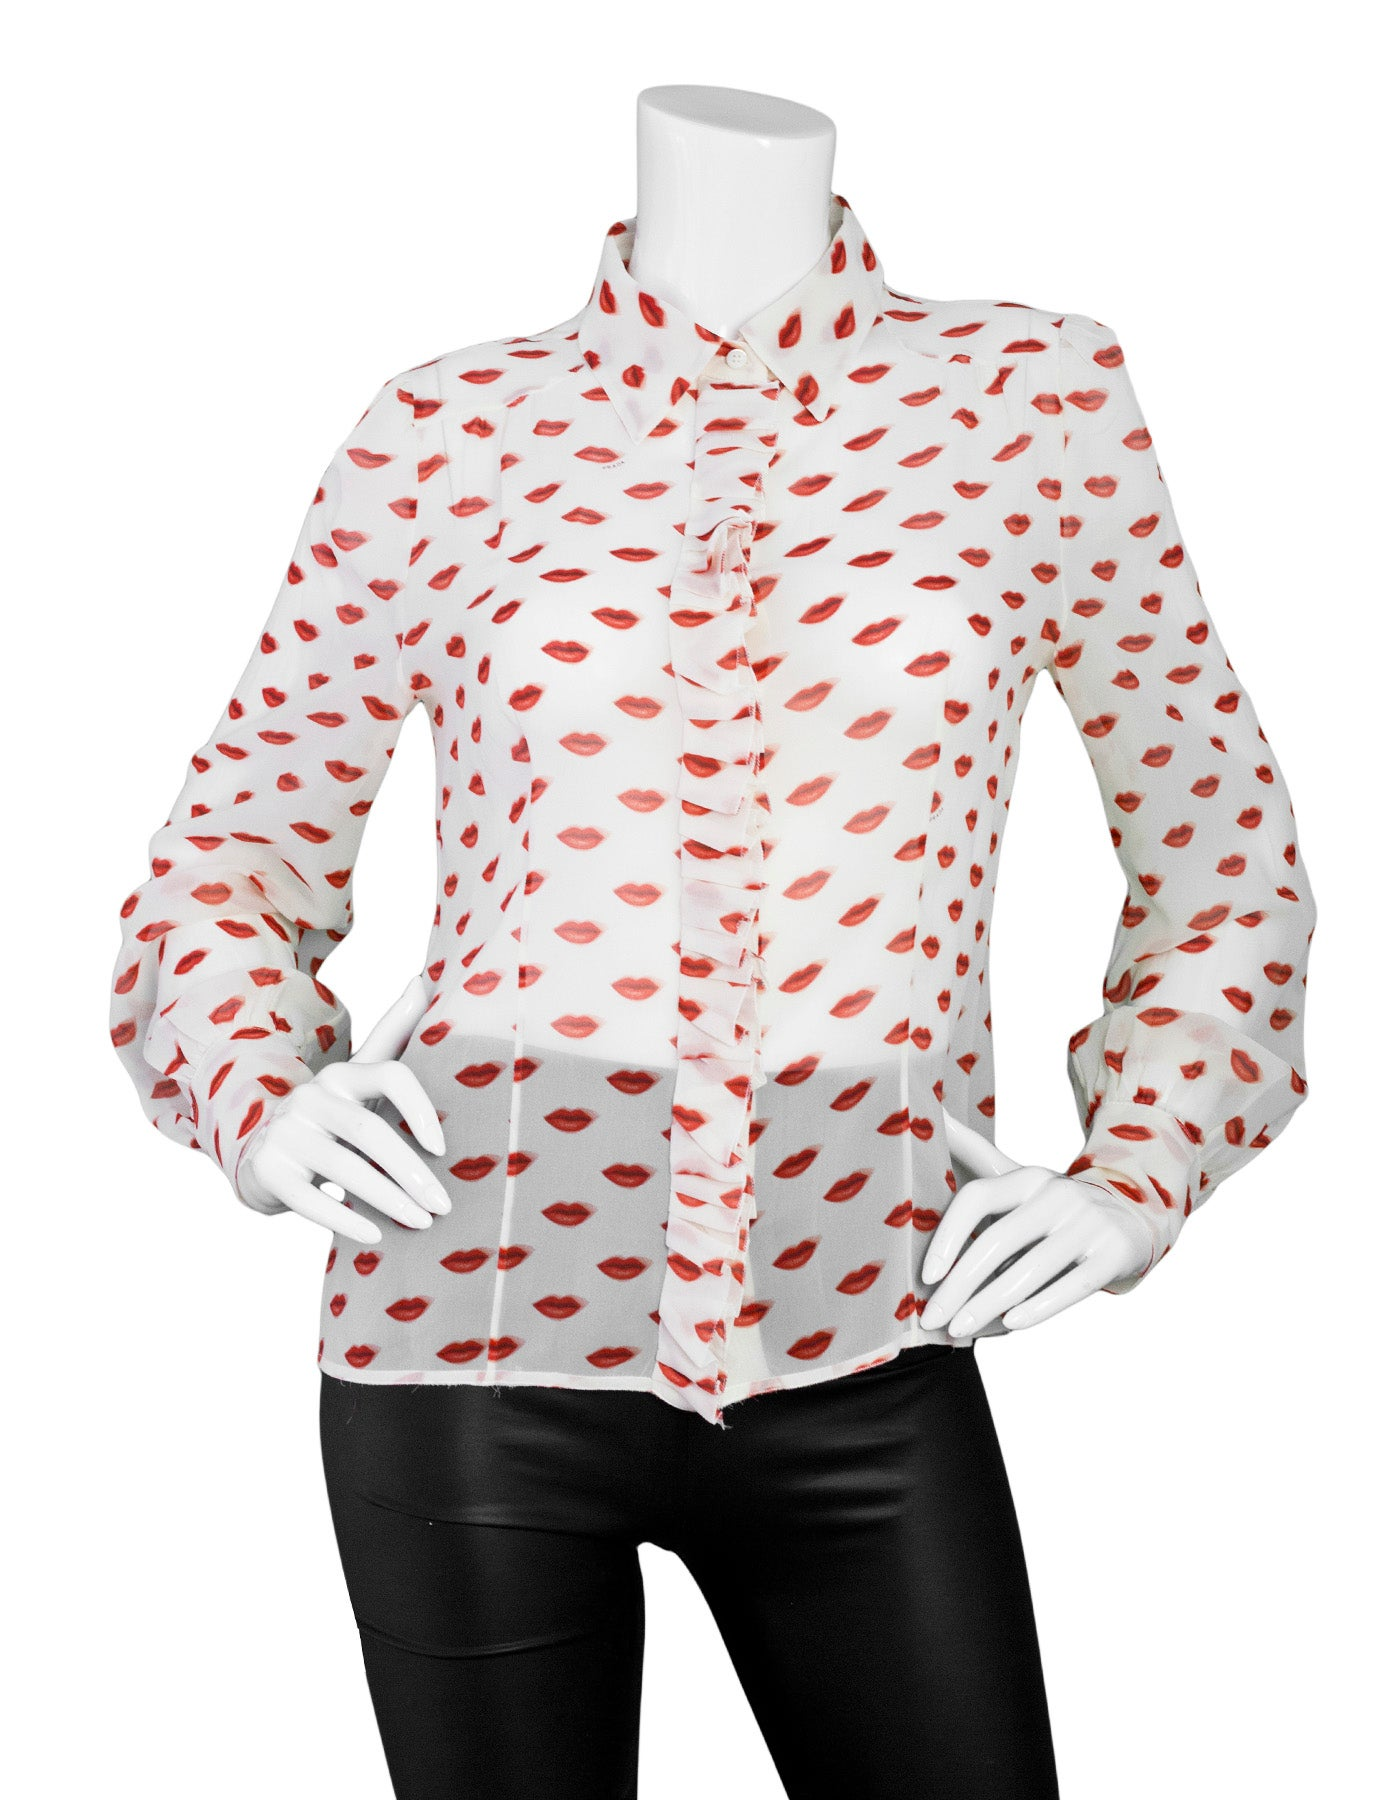 2b6586dd303564 Prada Sheer Ivory Lips Printed Silk Blouse sz IT46 For Sale at 1stdibs